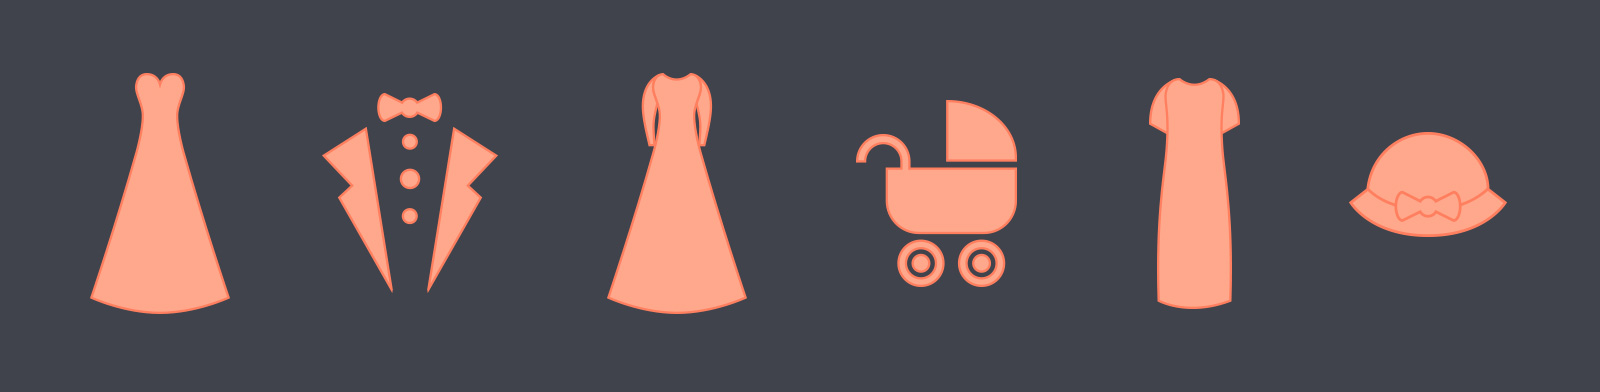 Just Married exhibition icons